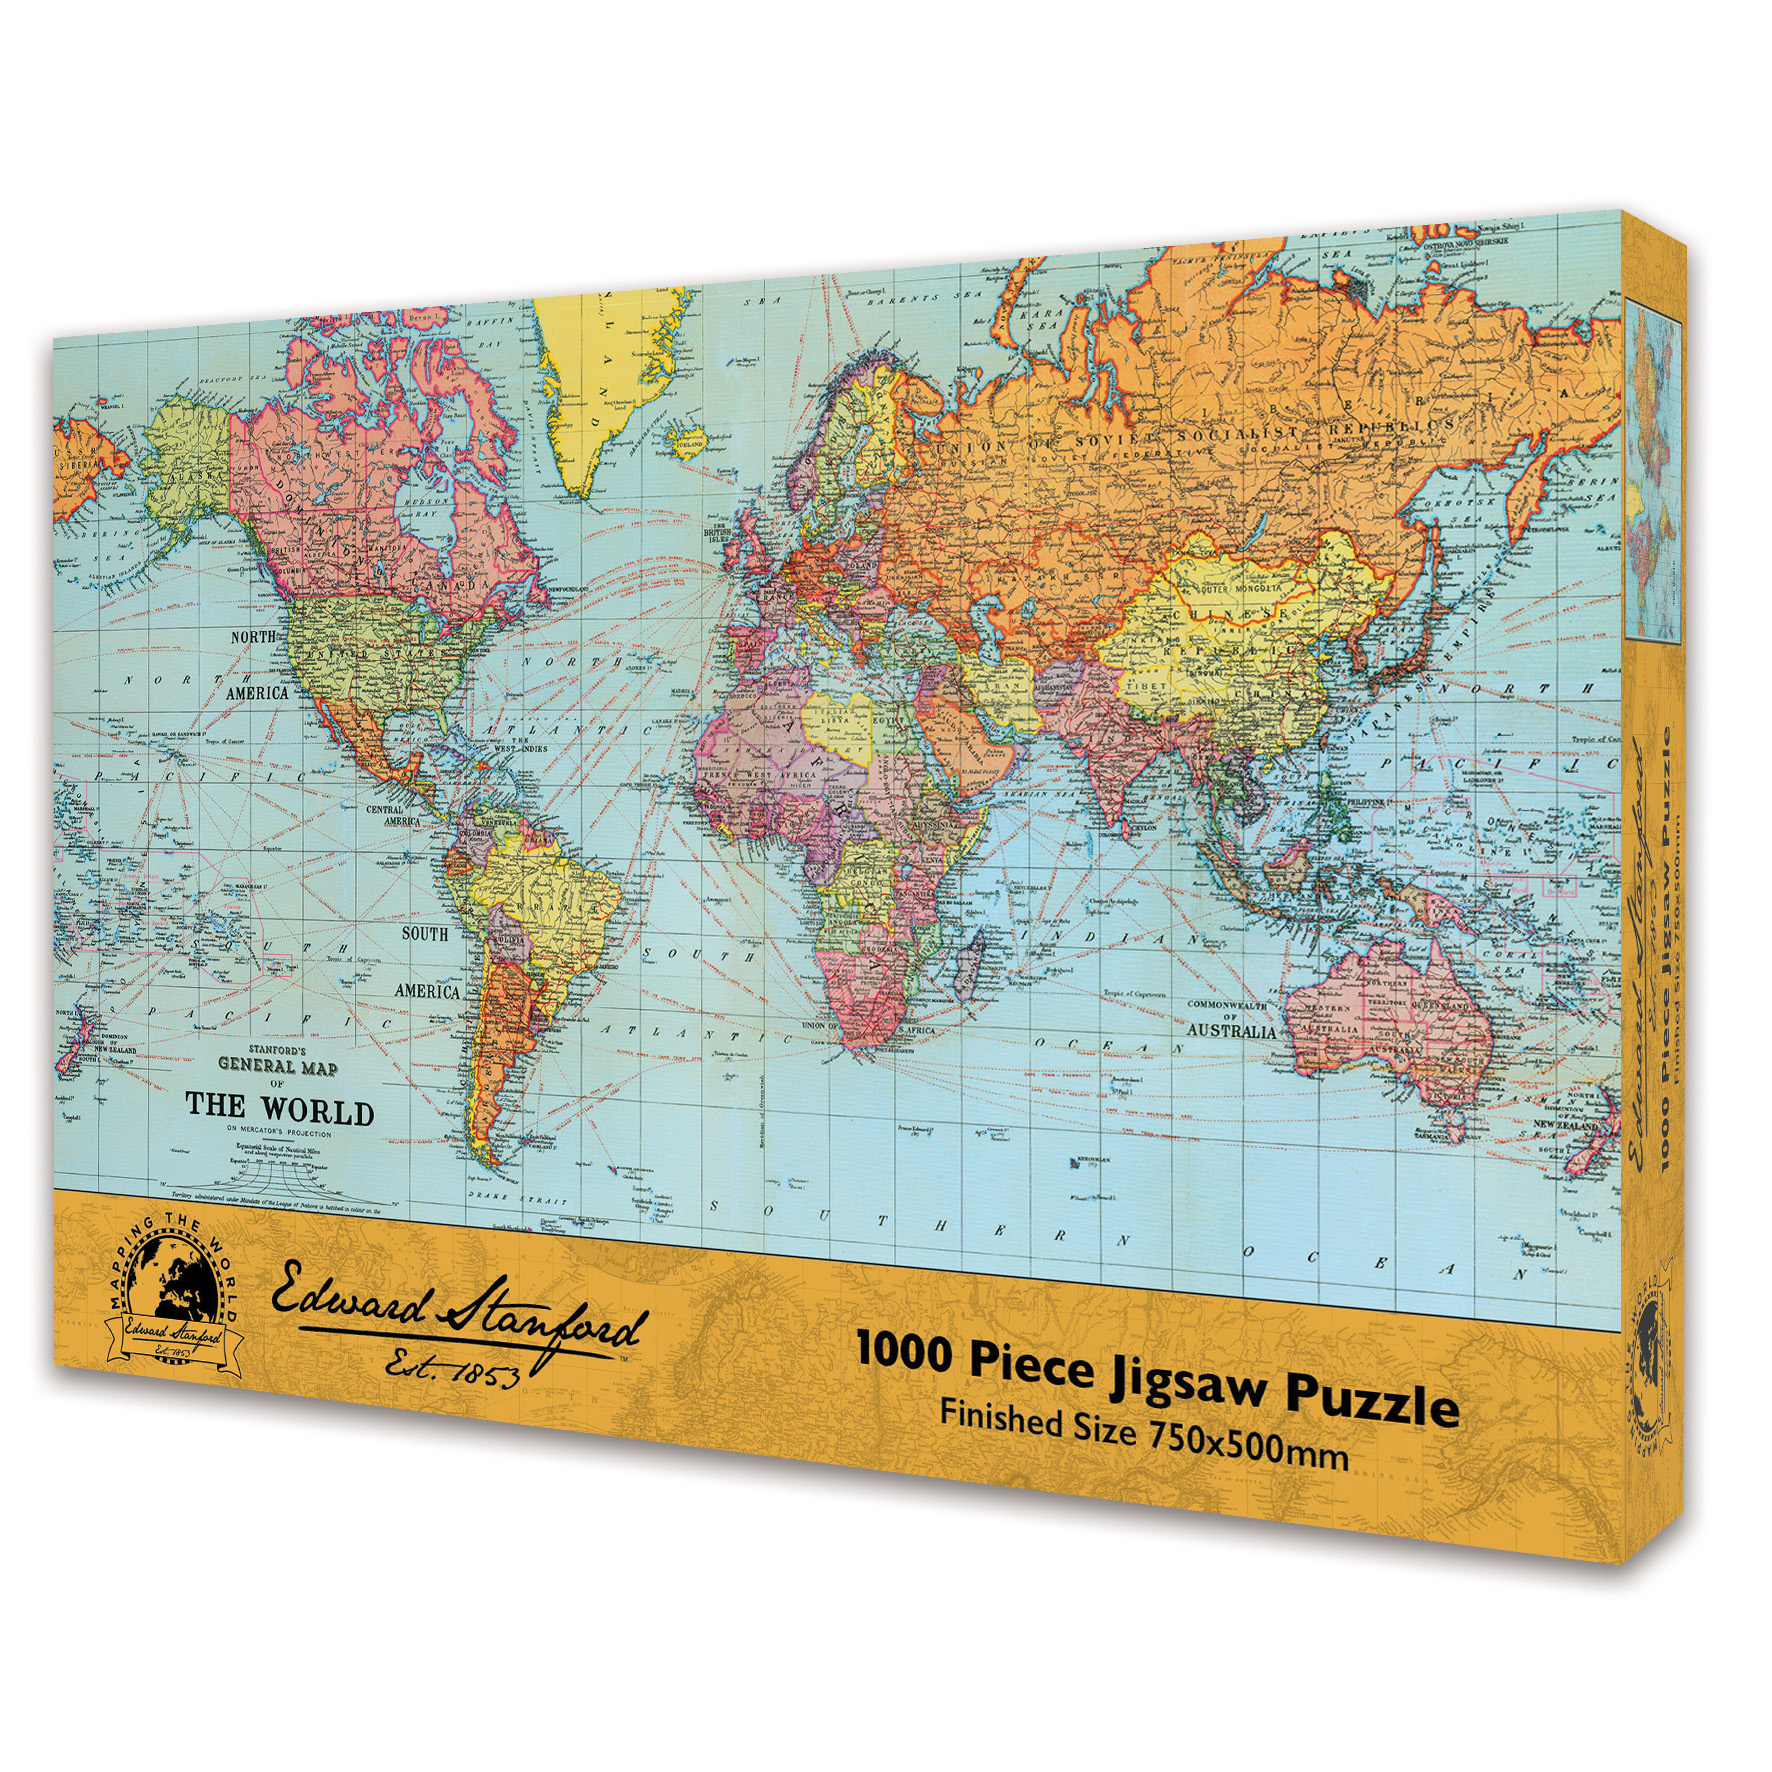 Puzzle world 1000 Jigsaw Pieces Edward Stanford rectangular